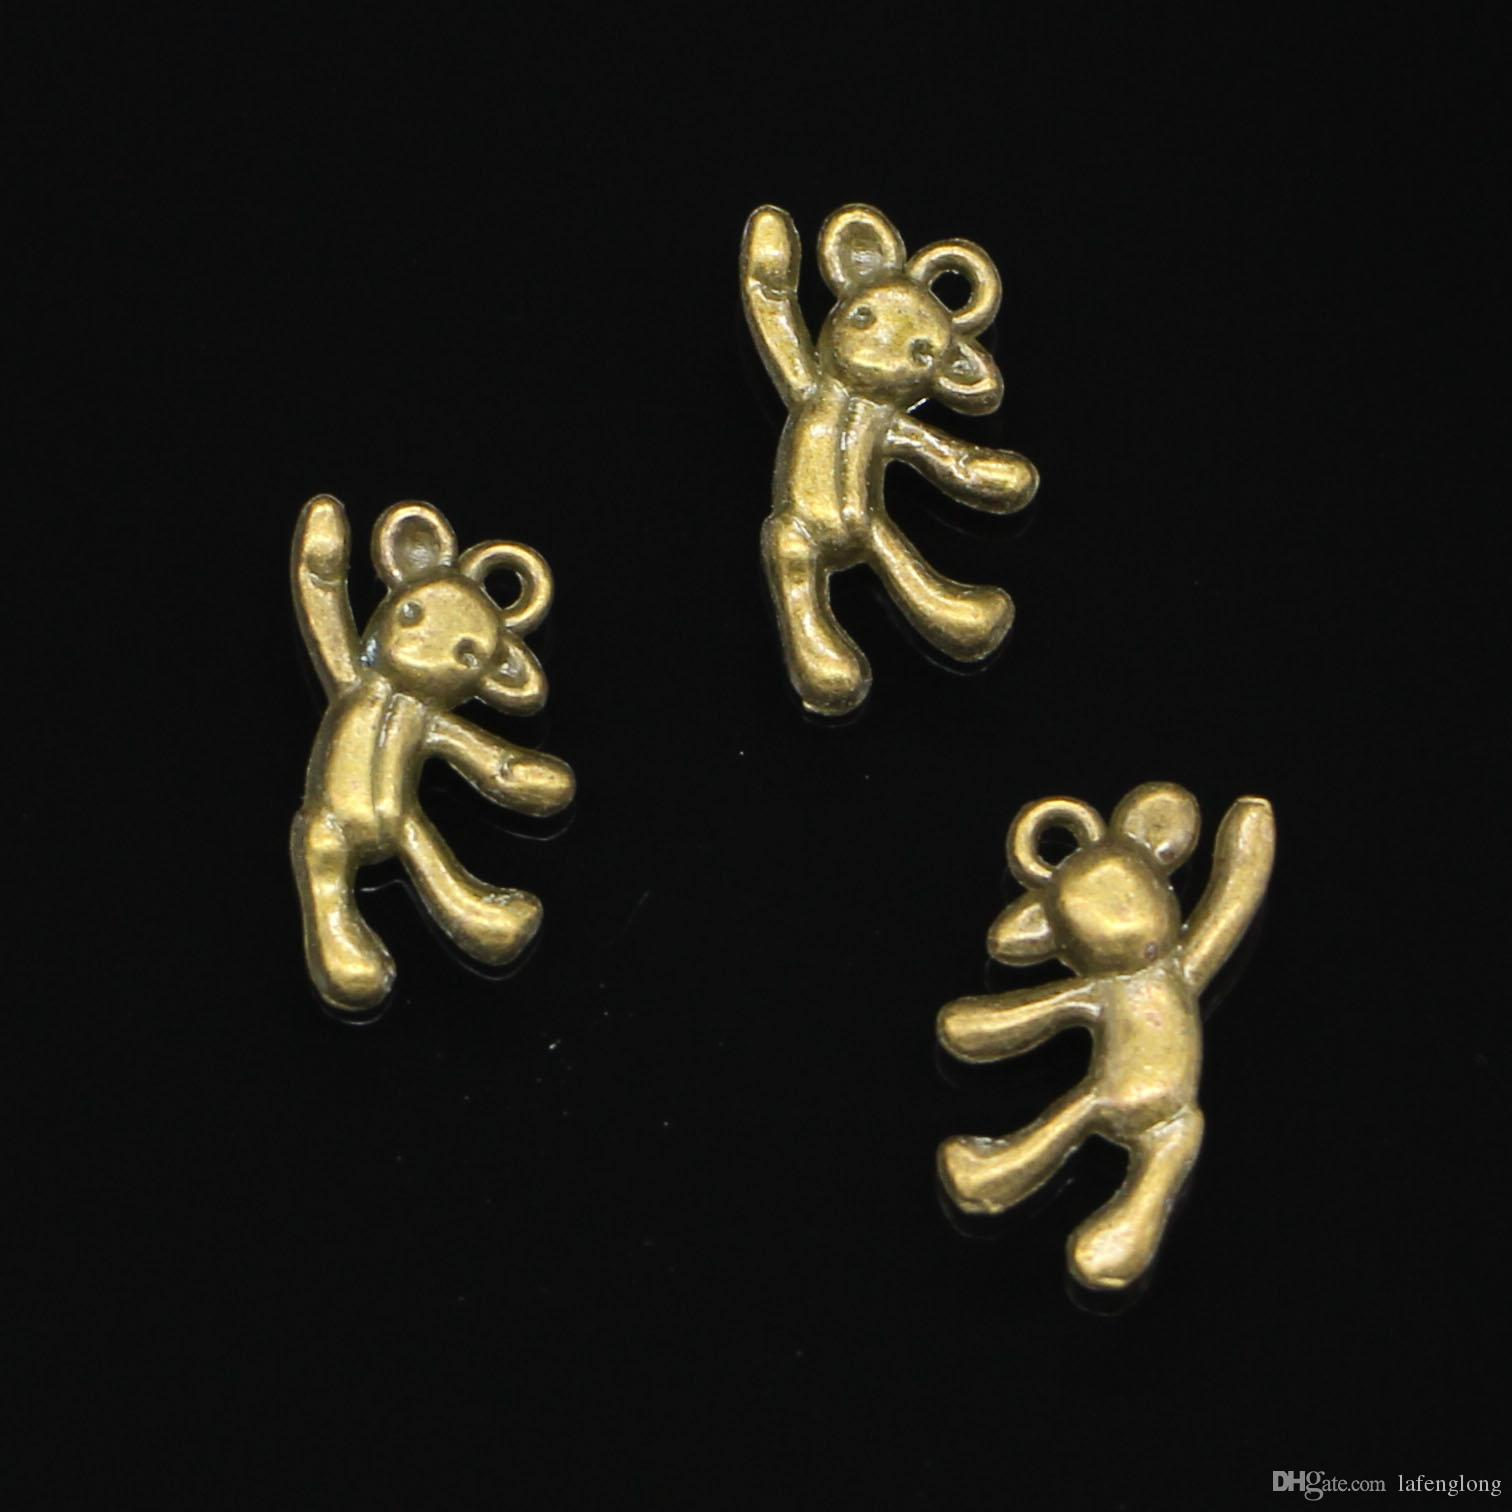 78pcs Antique Bronze Plated gymnastics lovely bear Charms Pendants fit Making Bracelet Necklace Jewelry Findings Jewelry Diy Craft 19*10mm